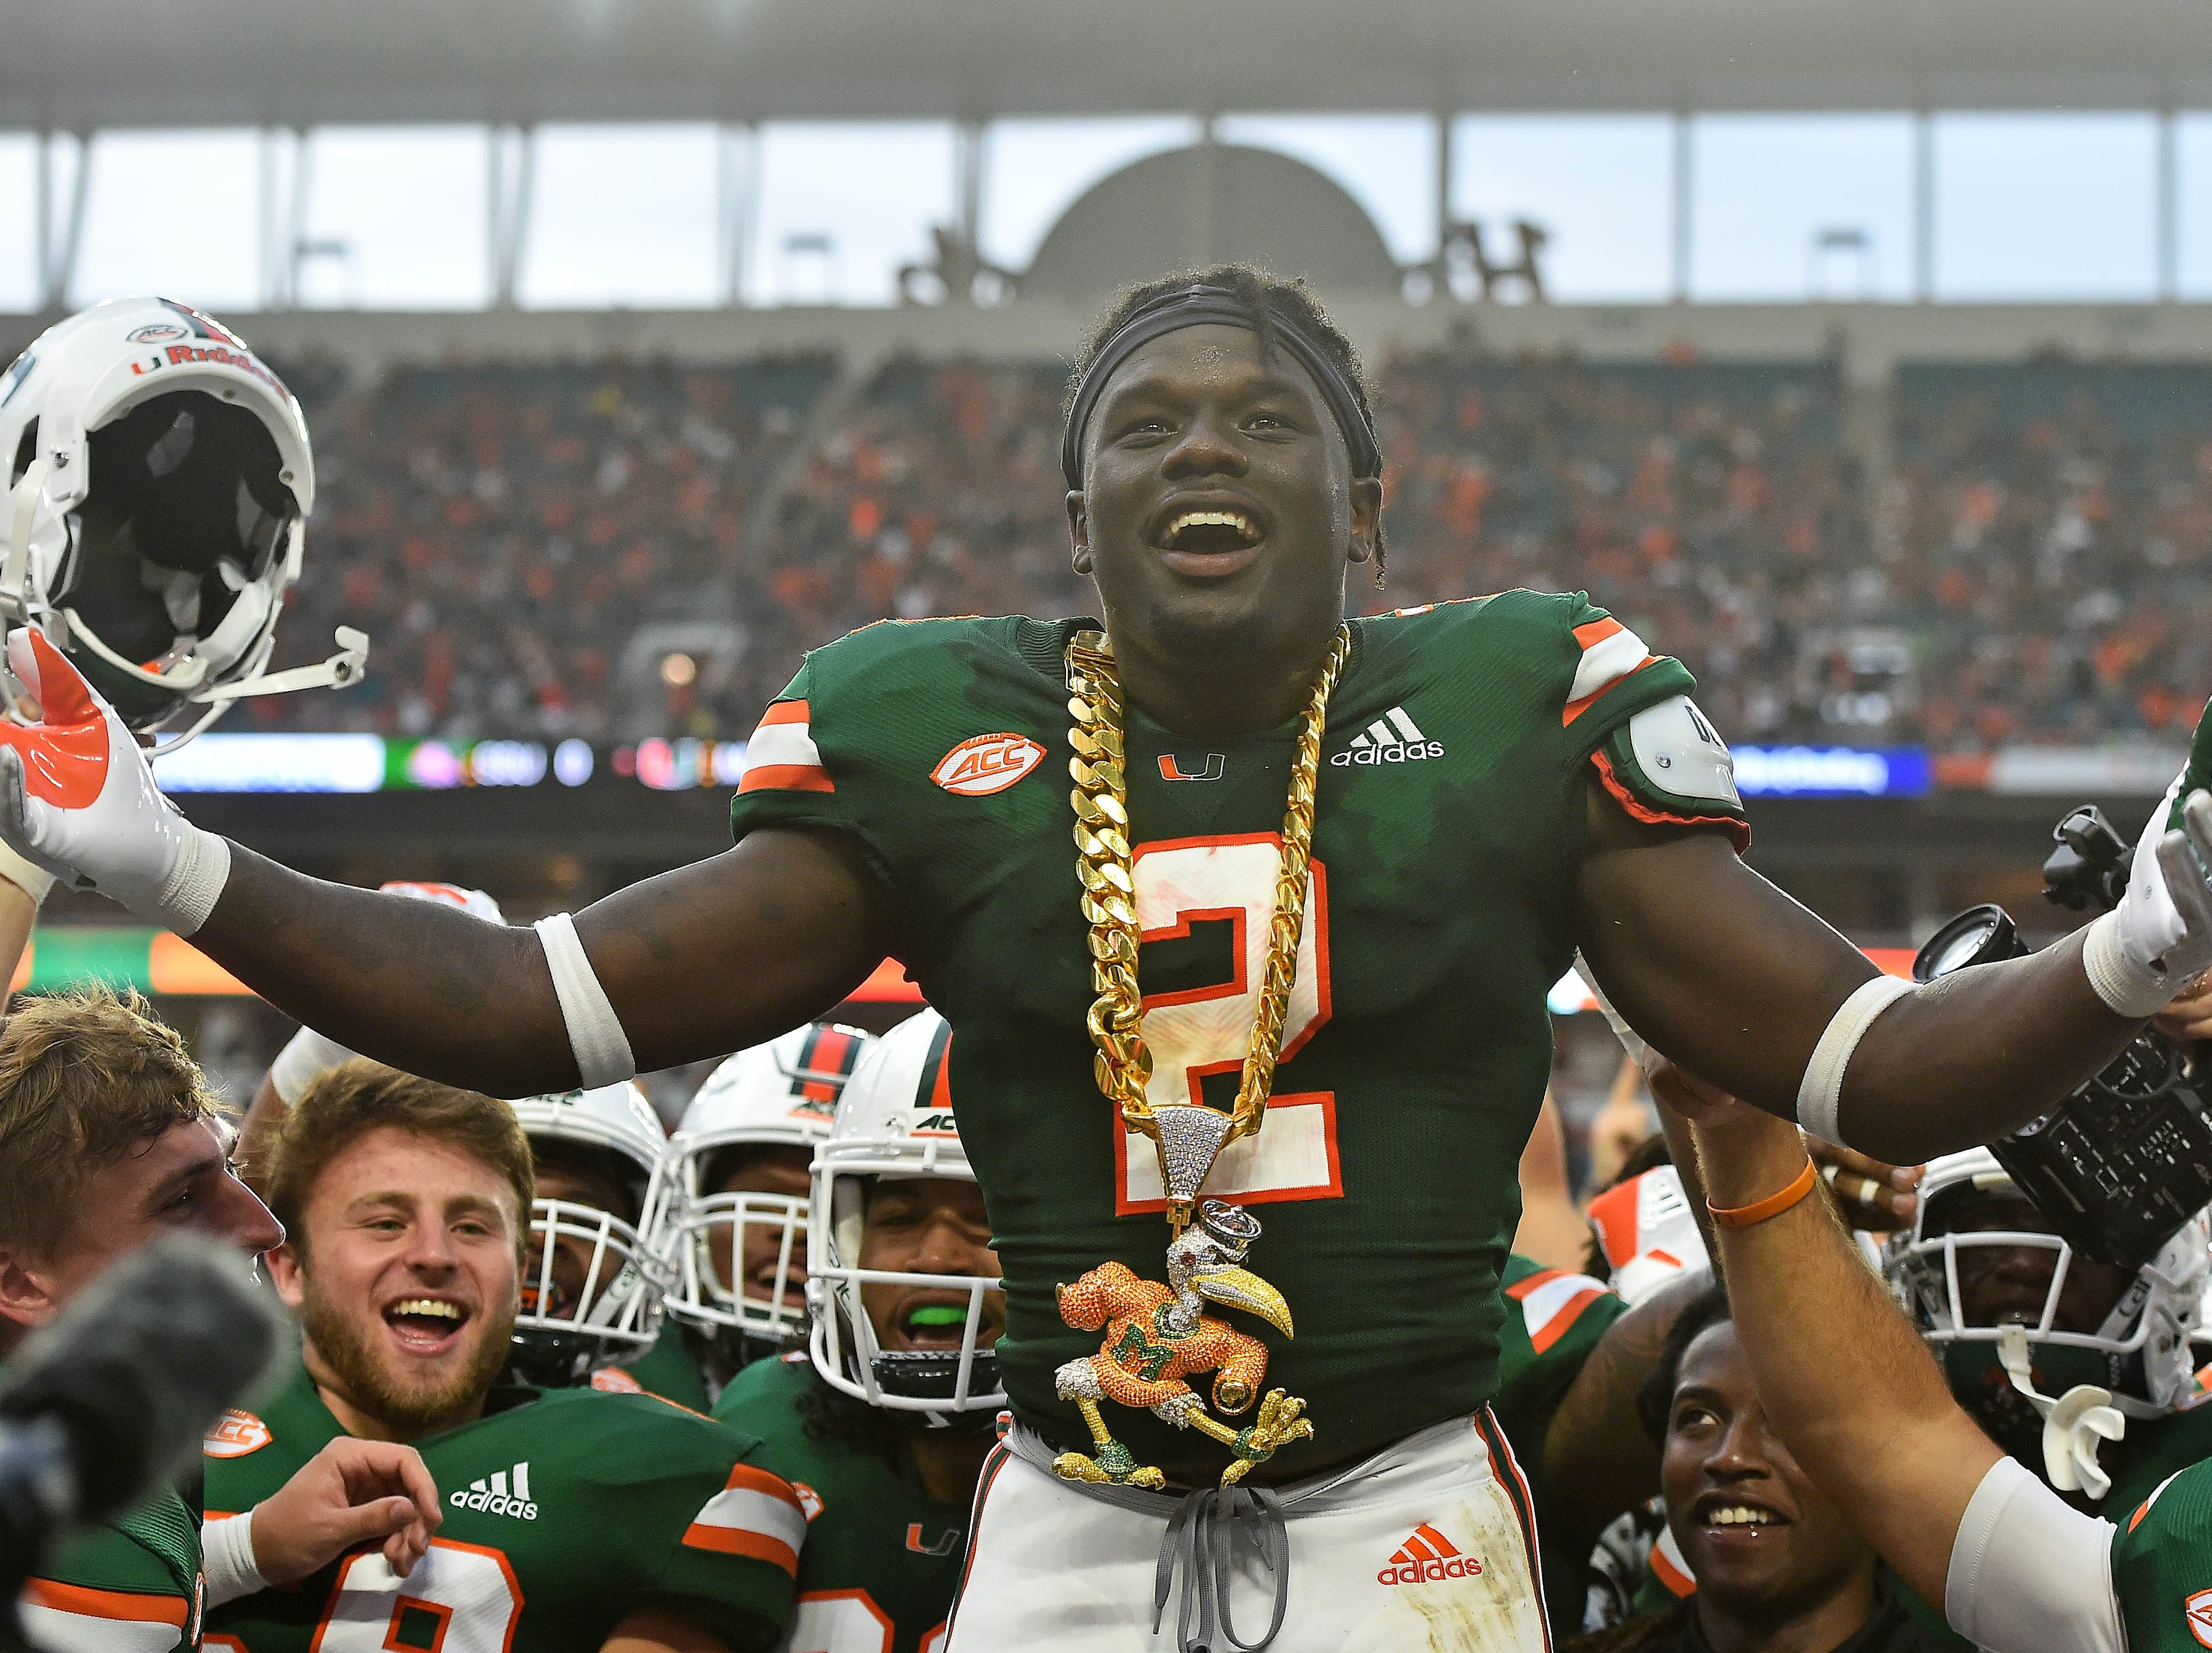 Sept. 8: Miami Hurricanes defensive back Trajan Bandy celebrates with the turnover chain after recovering a fumble against the Savannah State Tigers.